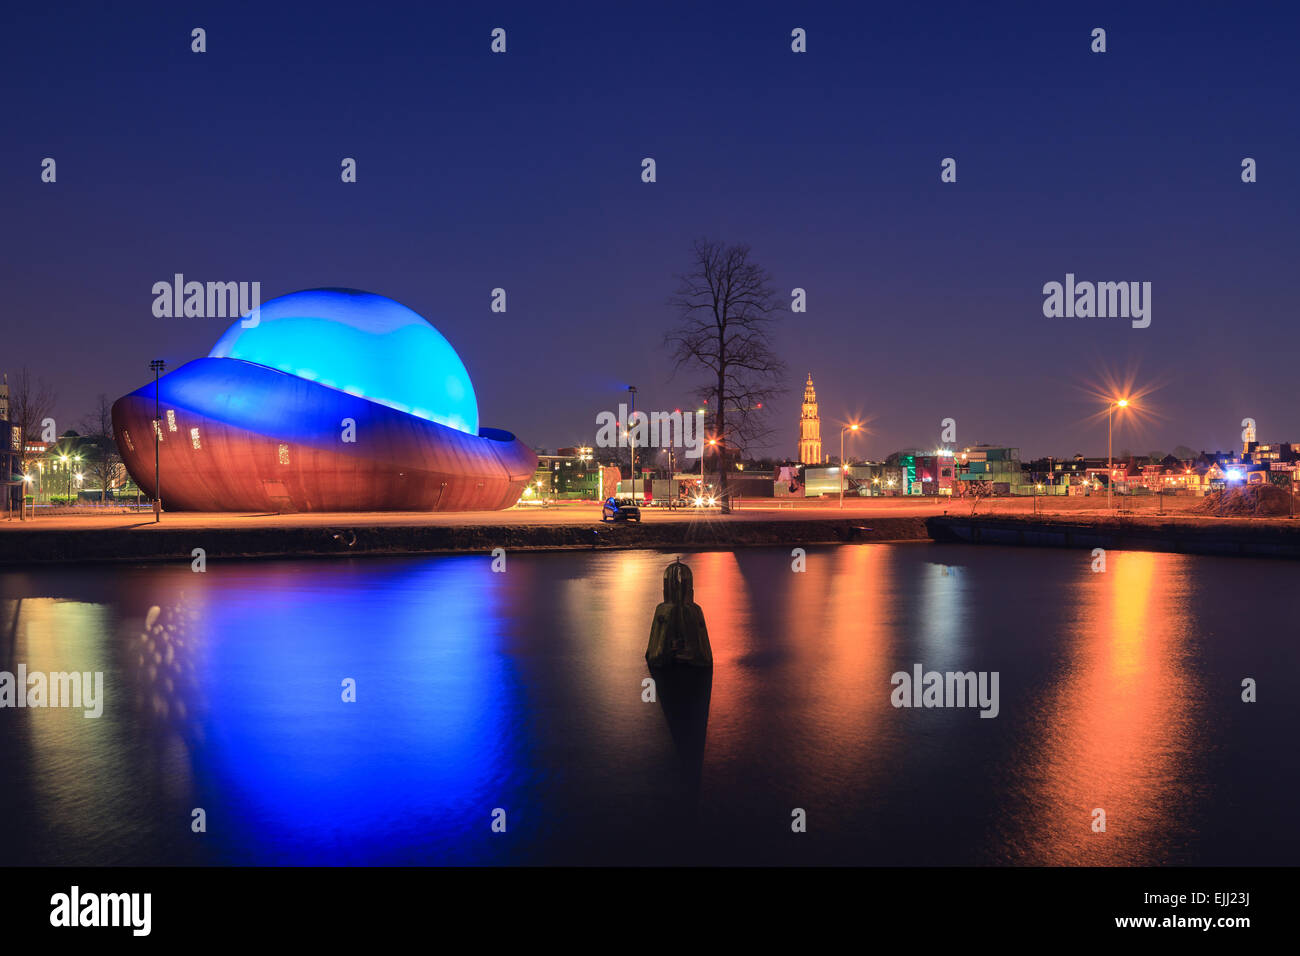 The Infoversum: knowledge temple, information dome and cinema. Groningen, Netherlands. - Stock Image